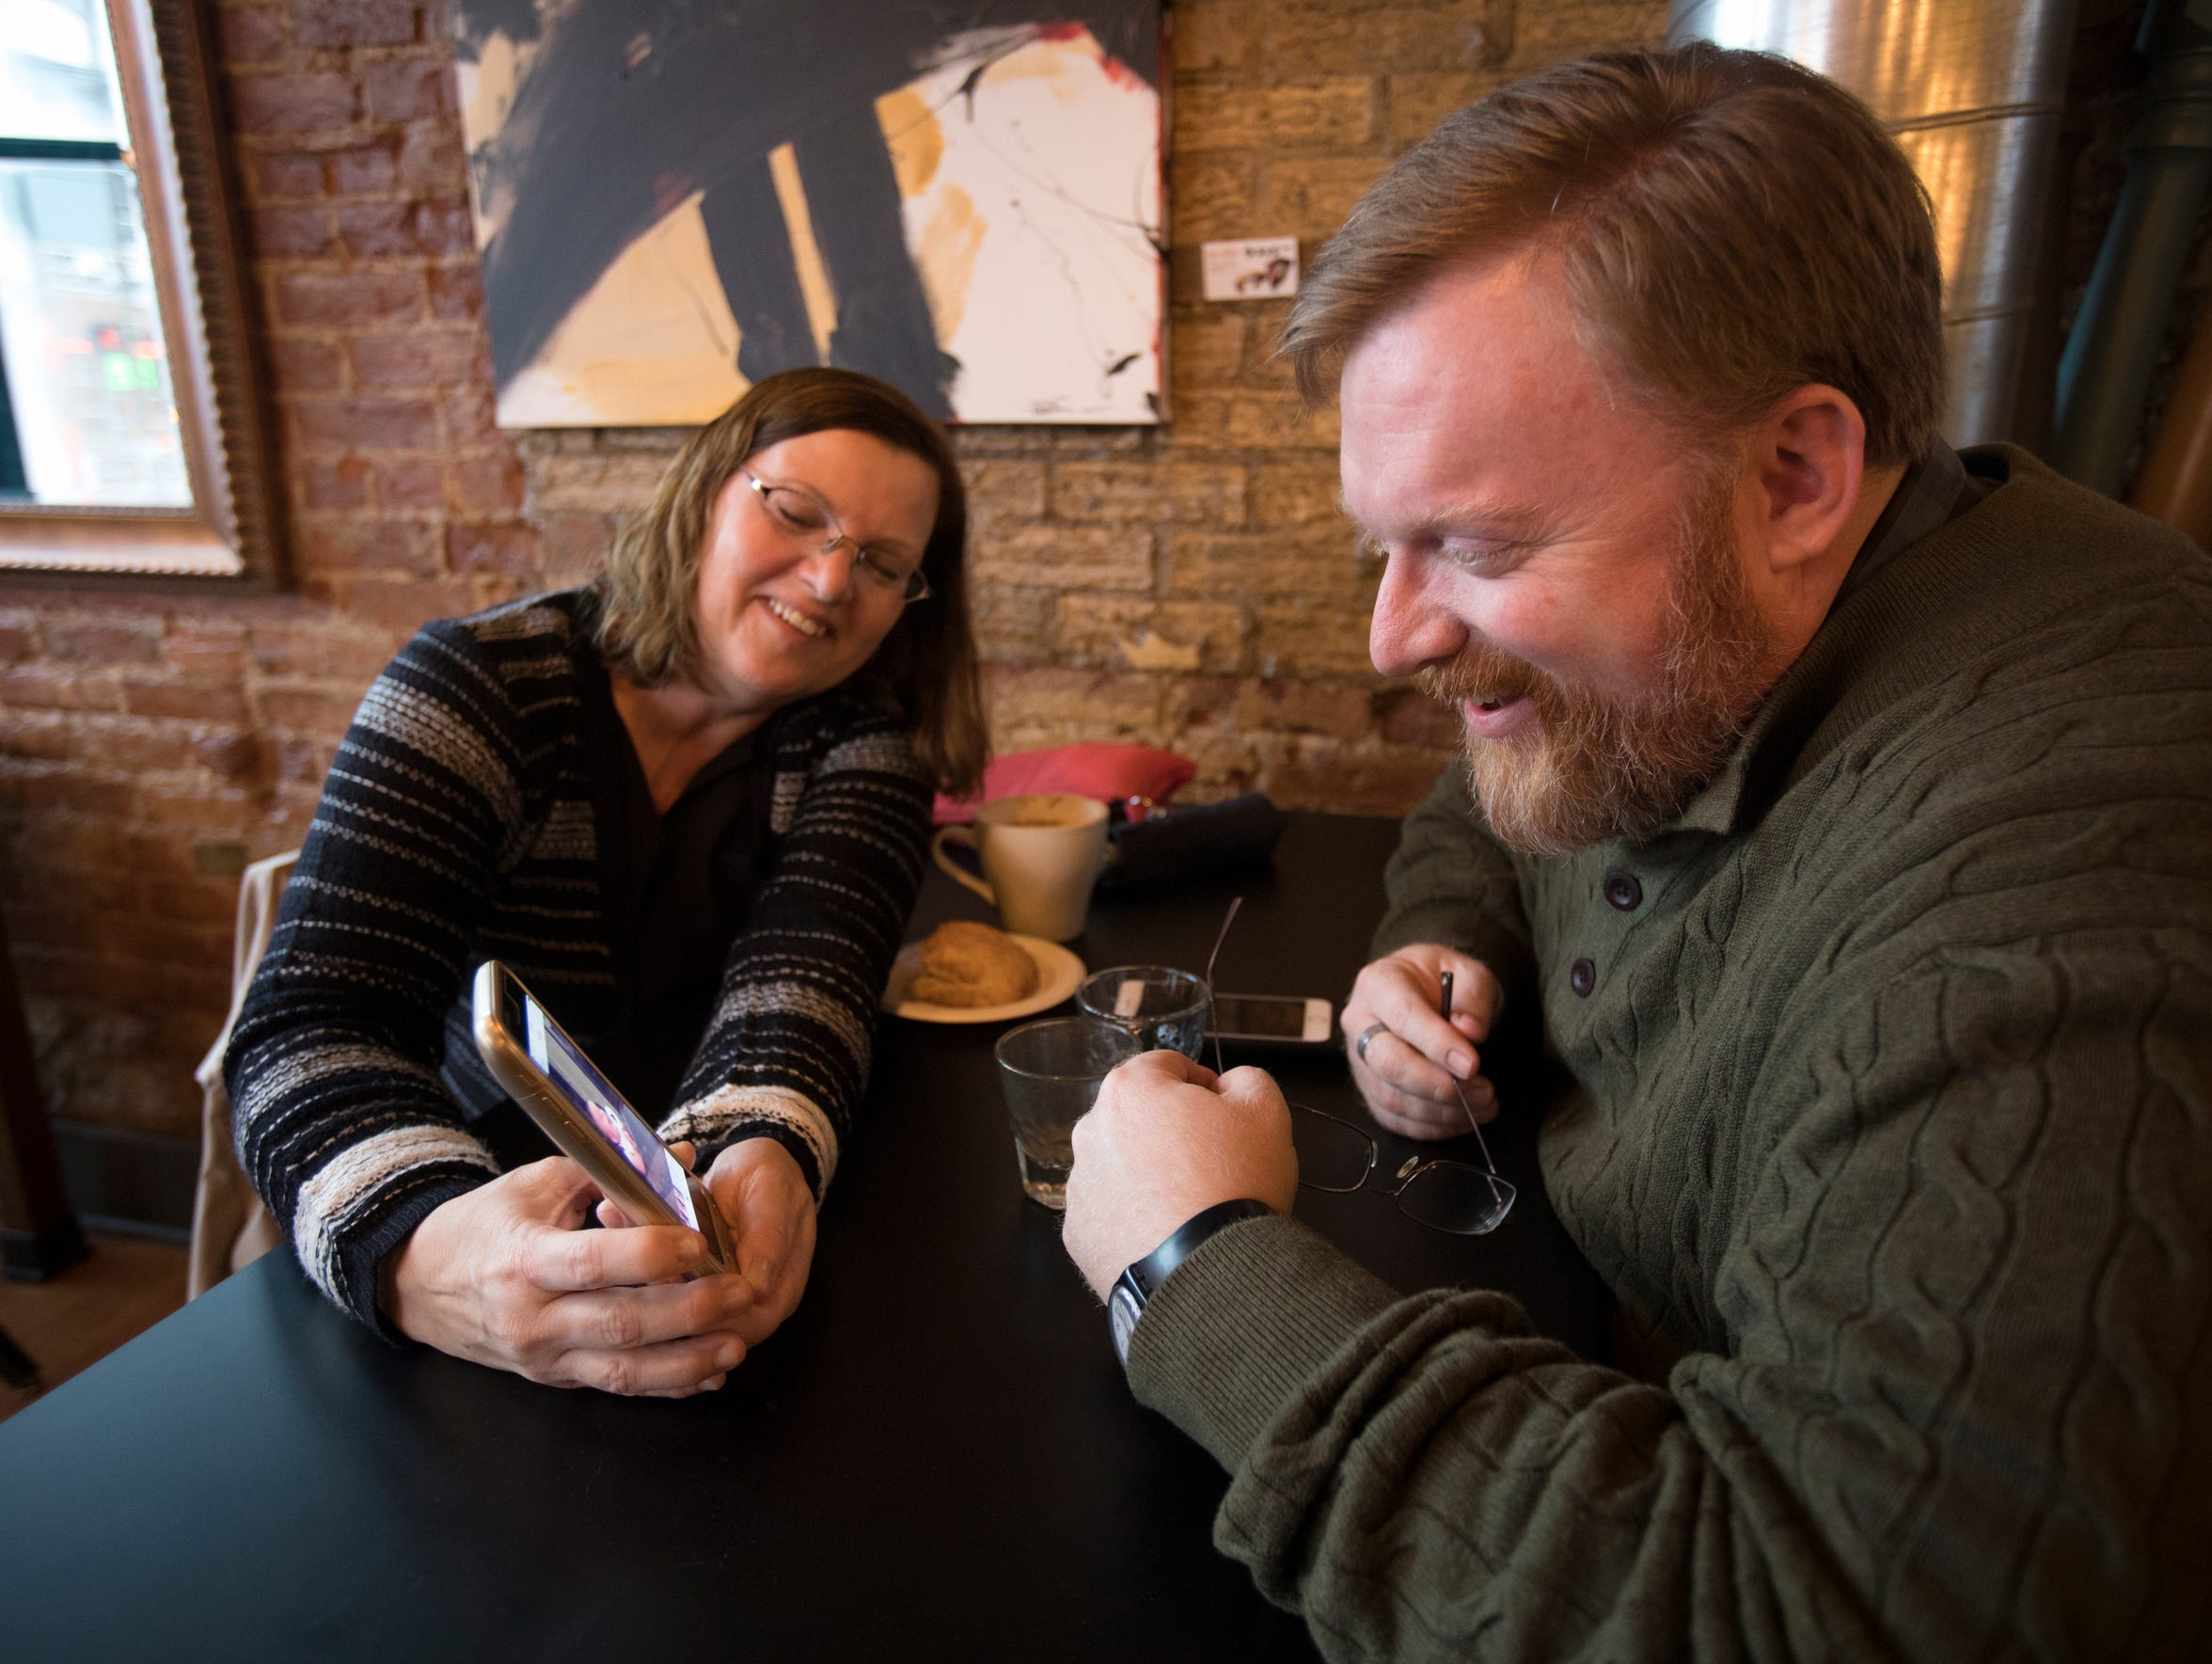 Michael meets with Cathy Campbell at a Dayton coffee